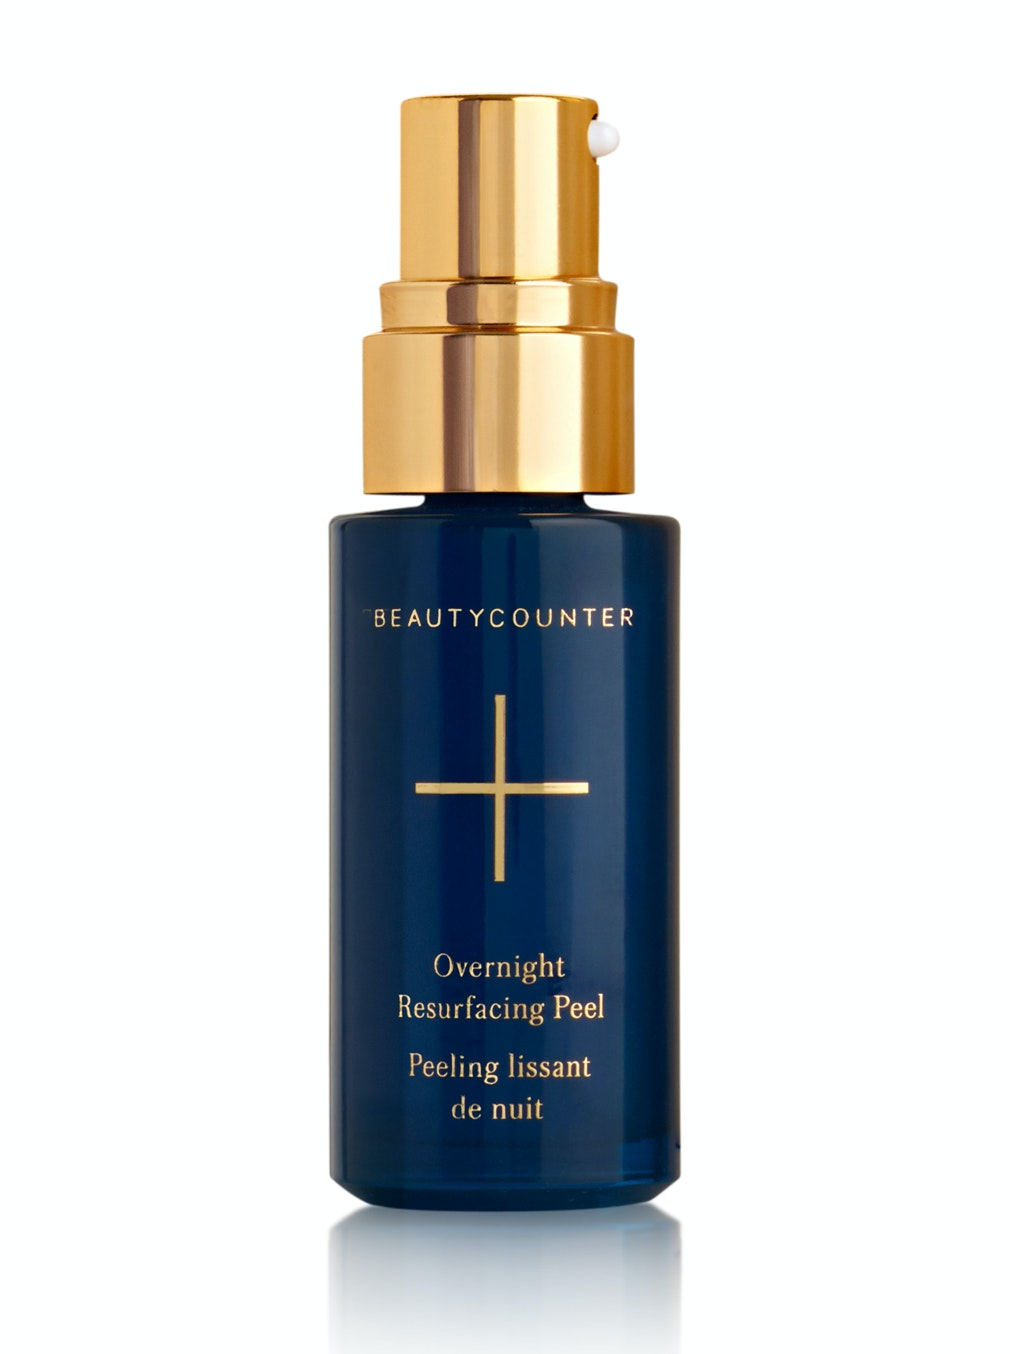 Overnight Resurfacing Peel Travel Size